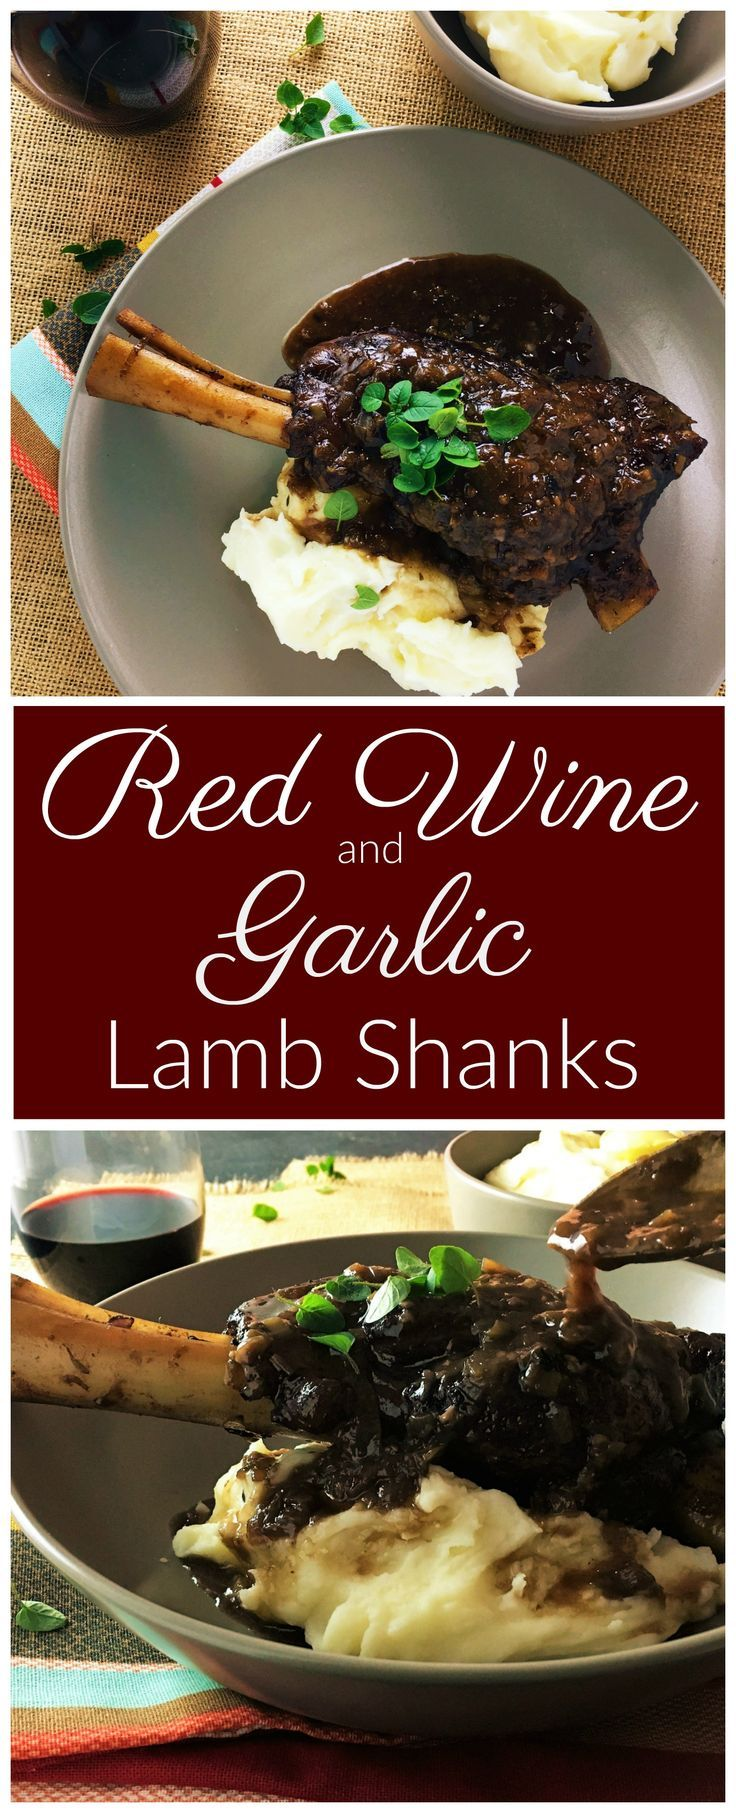 Red Wine And Garlic Lamb Shanks Recipe Lamb Shank Recipe Lamb Recipes Lamb Dishes